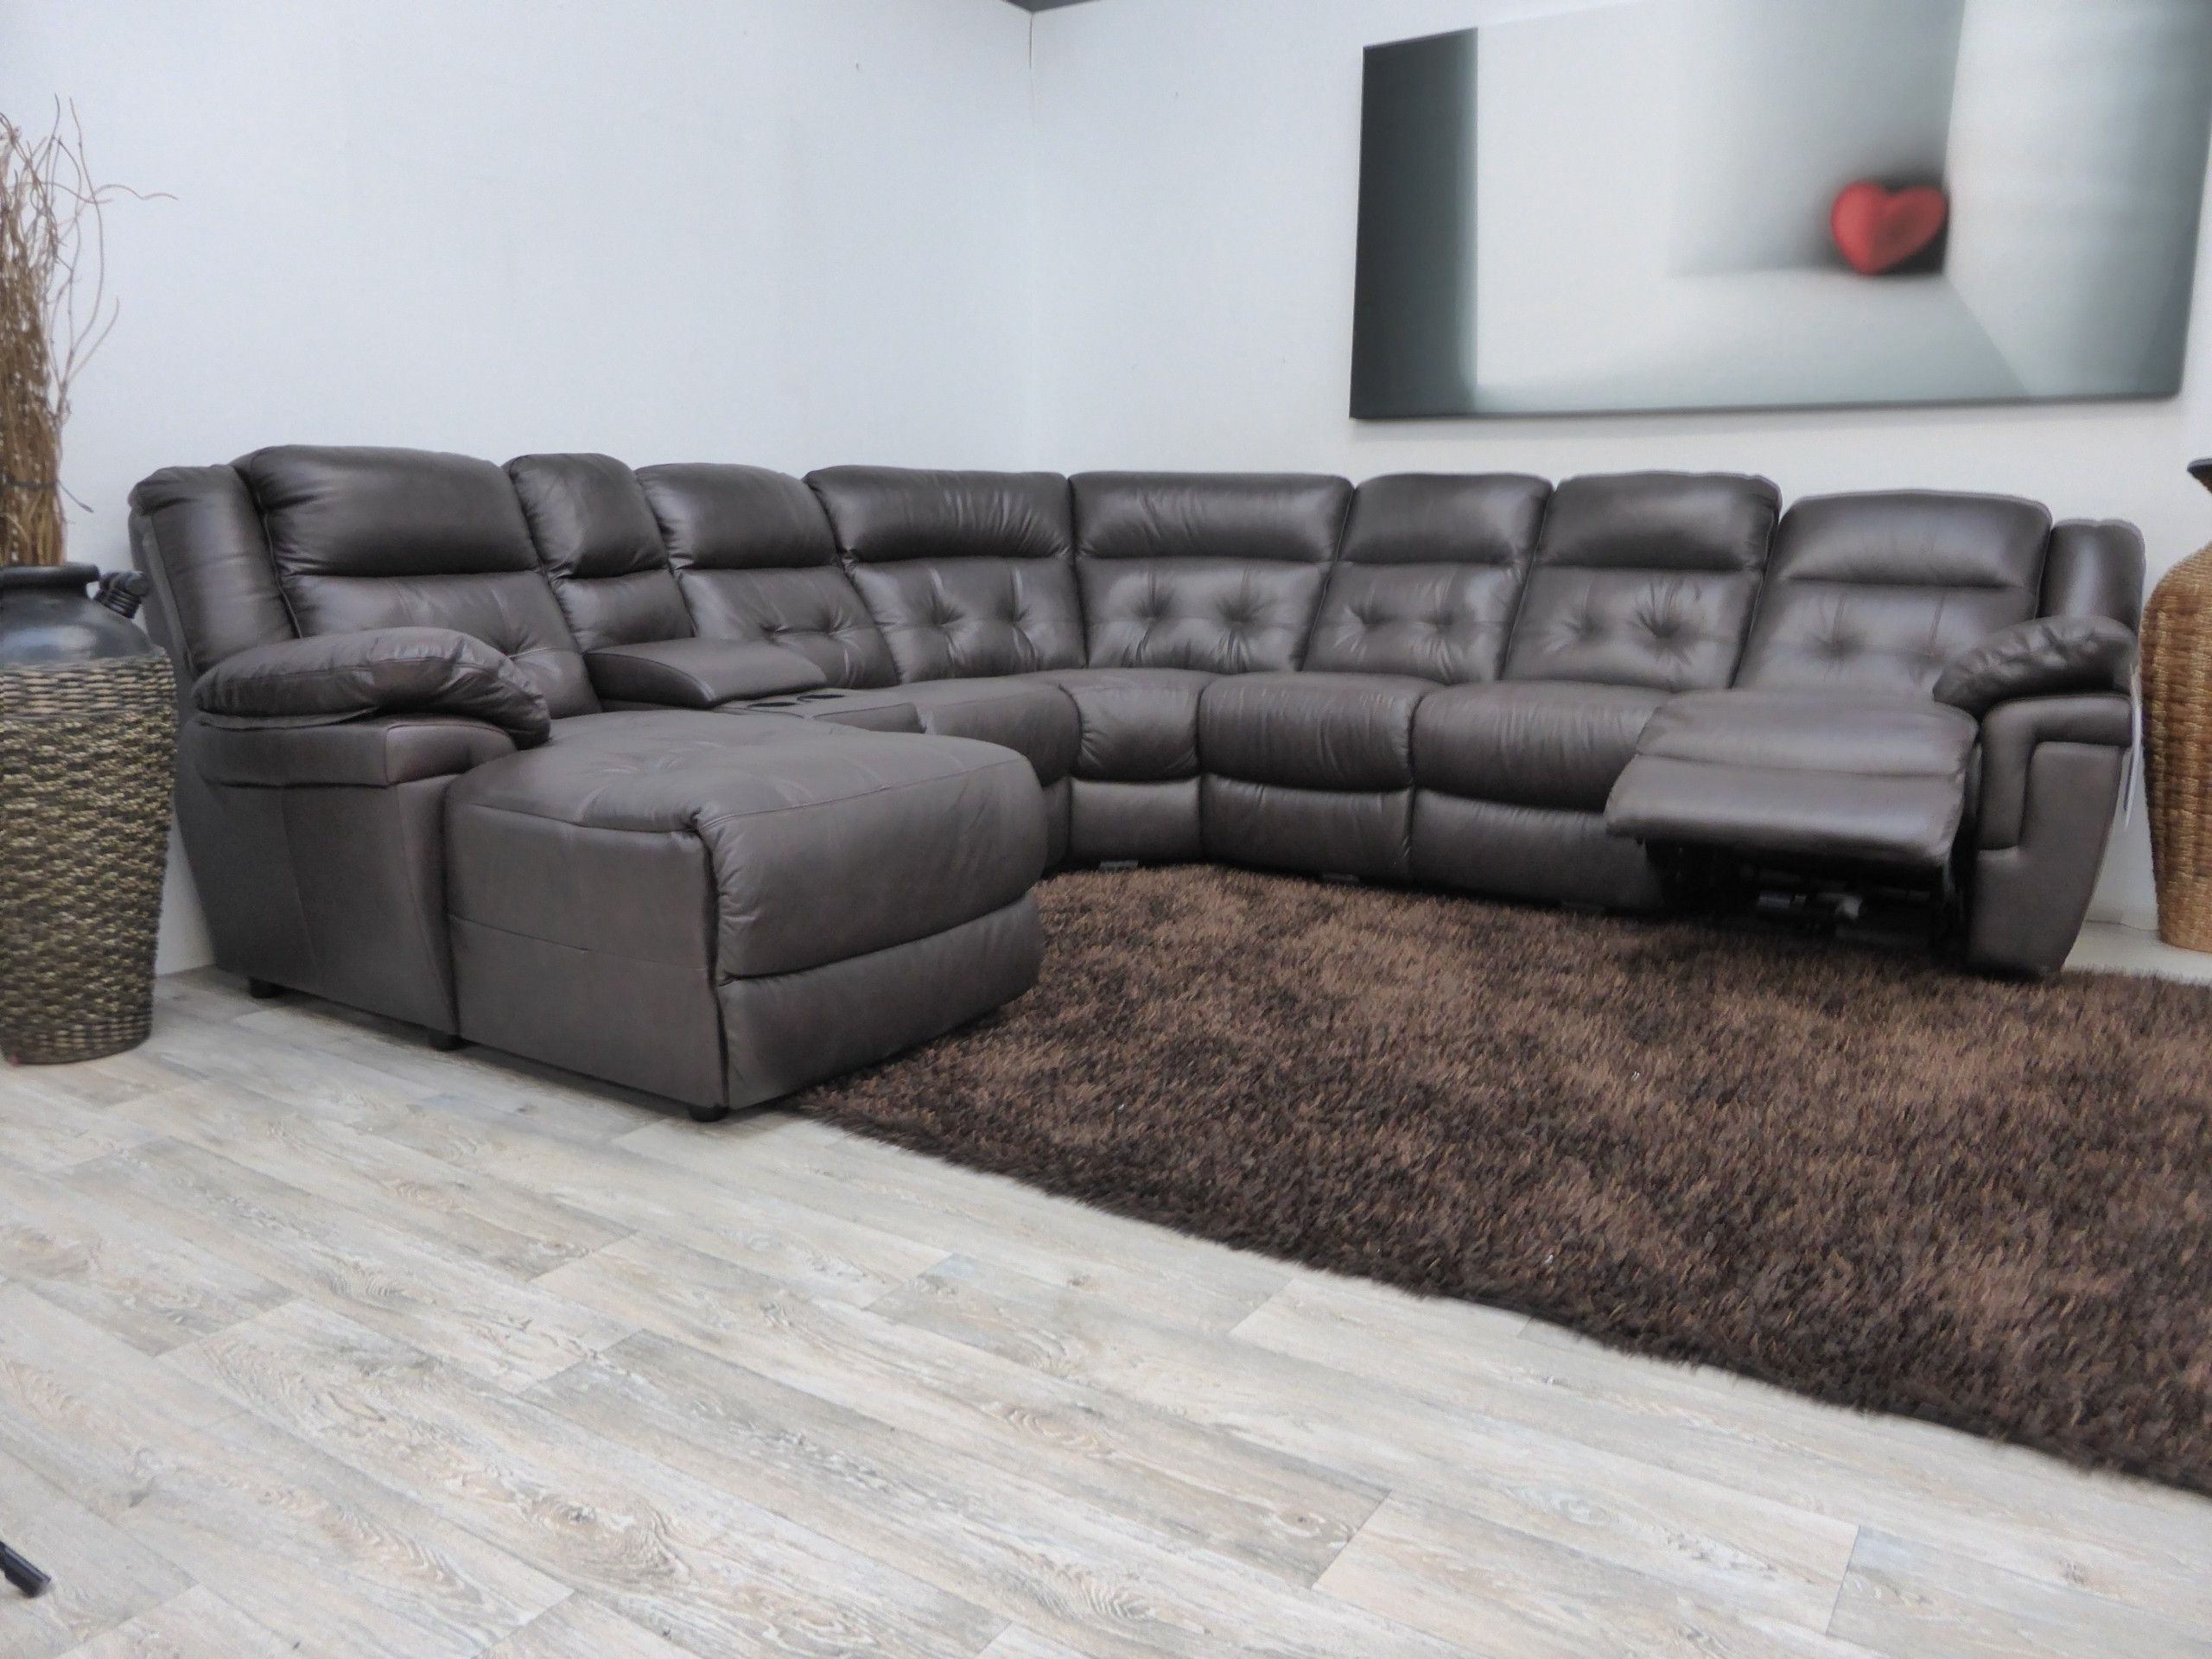 Queens Ny Sectional Sofas Within Recent L Shaped Sofa Design With Black Upholstery Faux Leather Sofa (View 16 of 20)